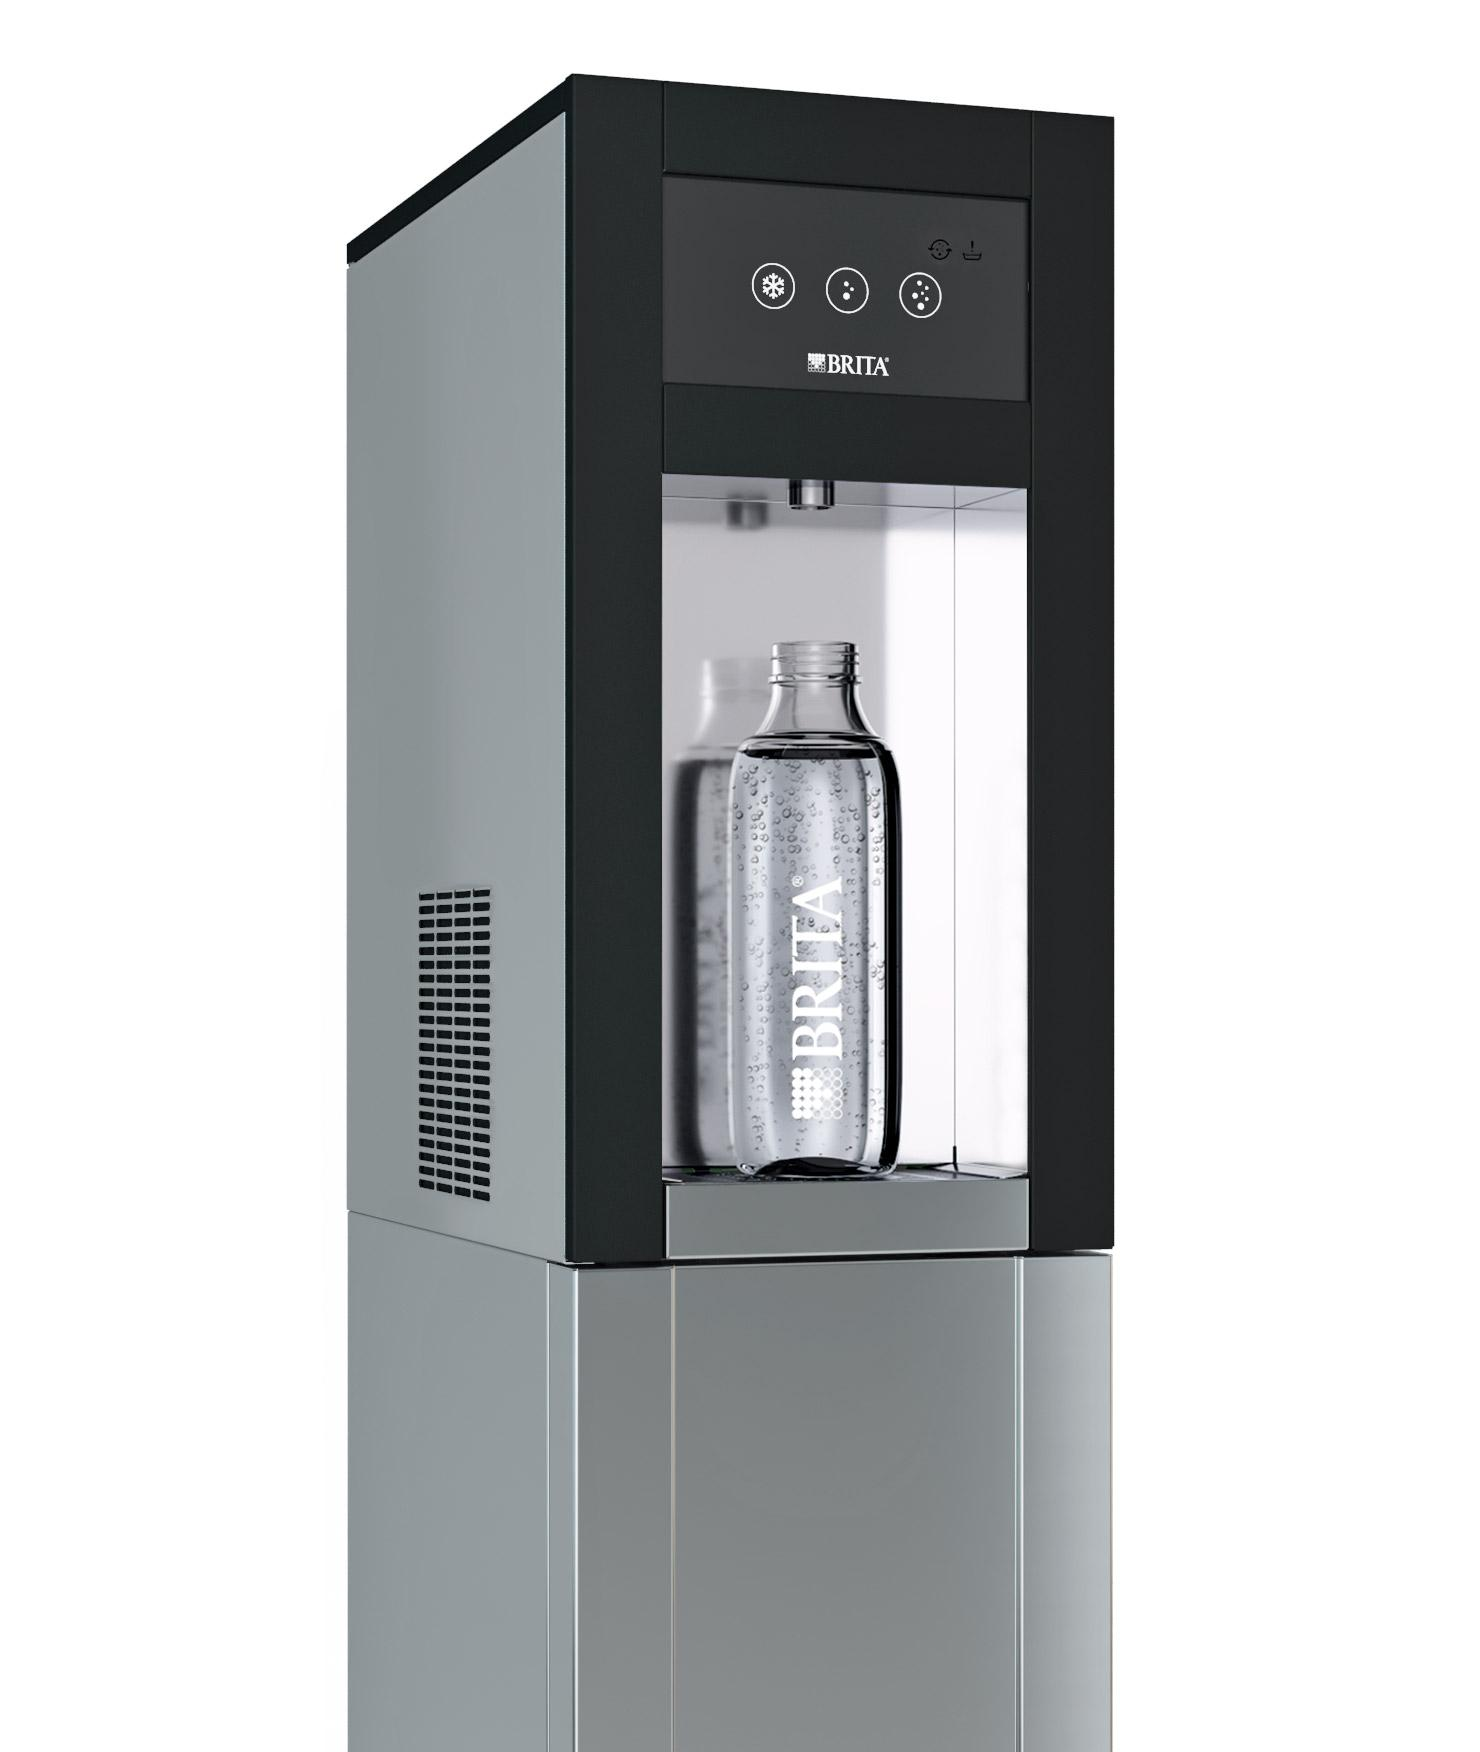 BRITA waste prevention Sodamaster and bottle